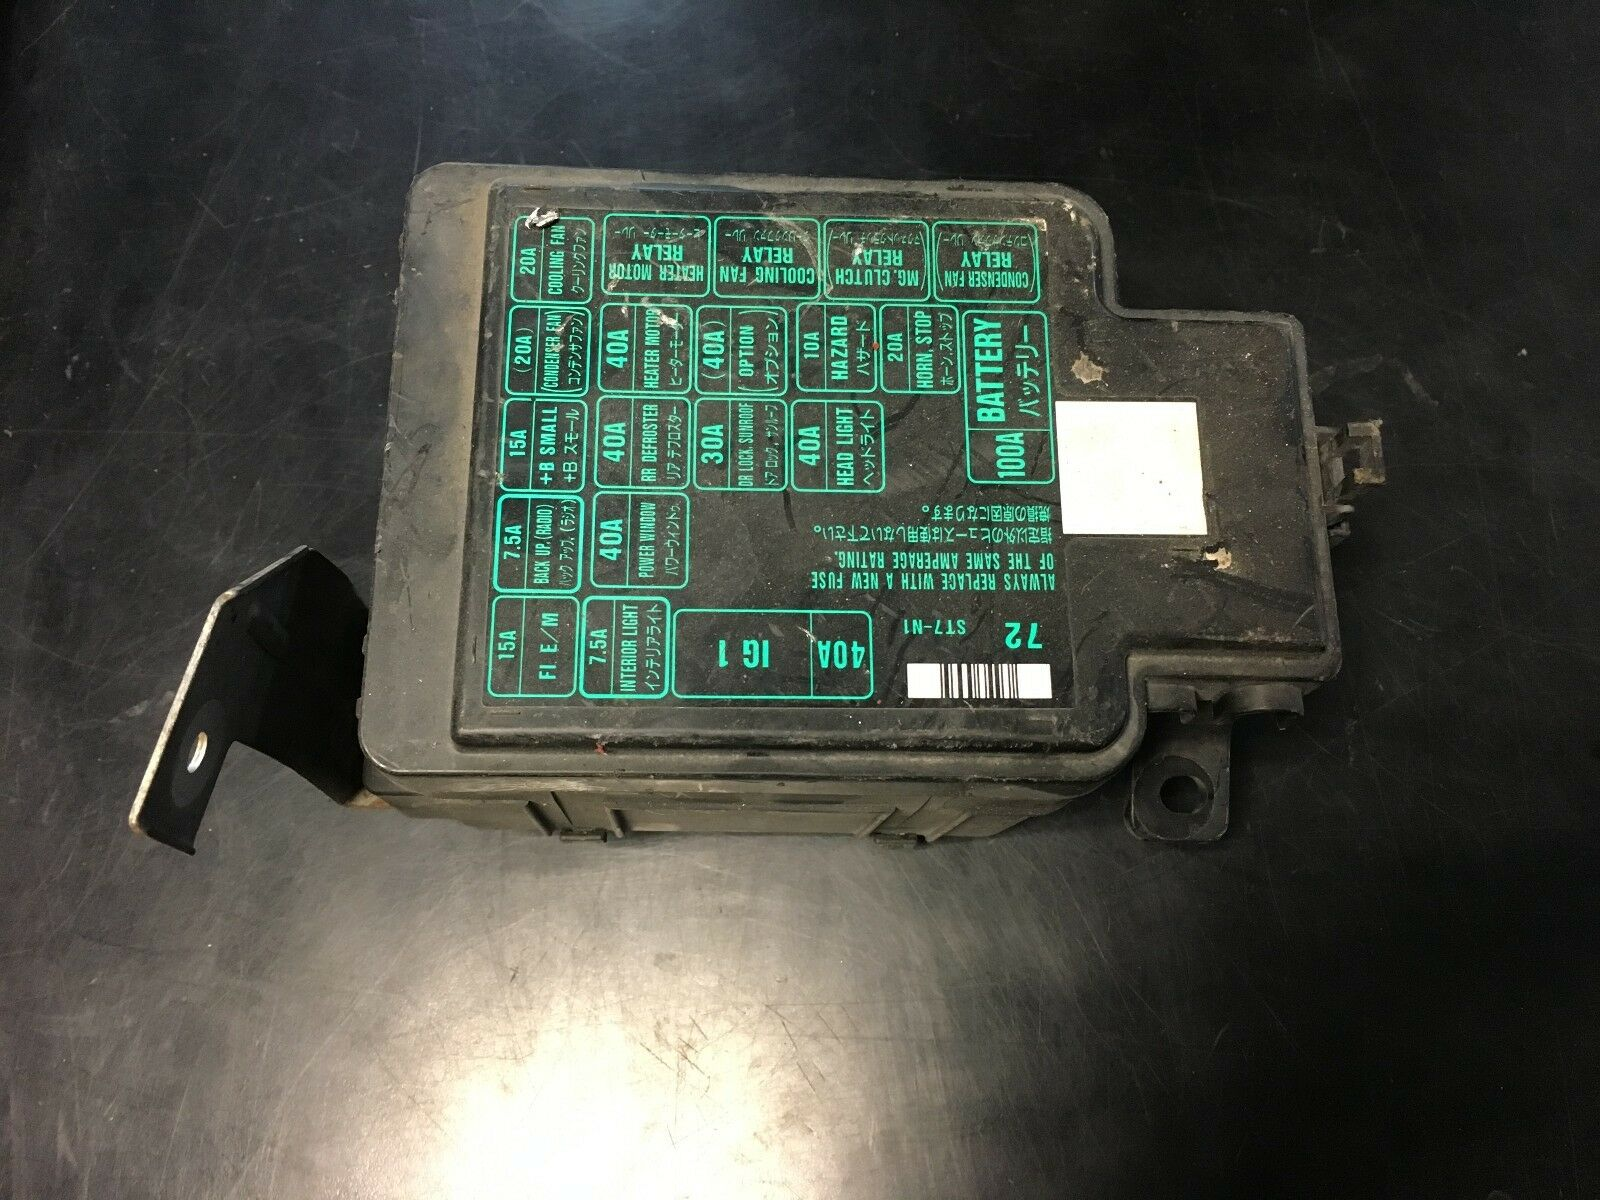 Honda Integra Dc2 Type-R Engine Bay Fuse Box - Jdm Genuine Honda 1 of 4Only  1 available See More